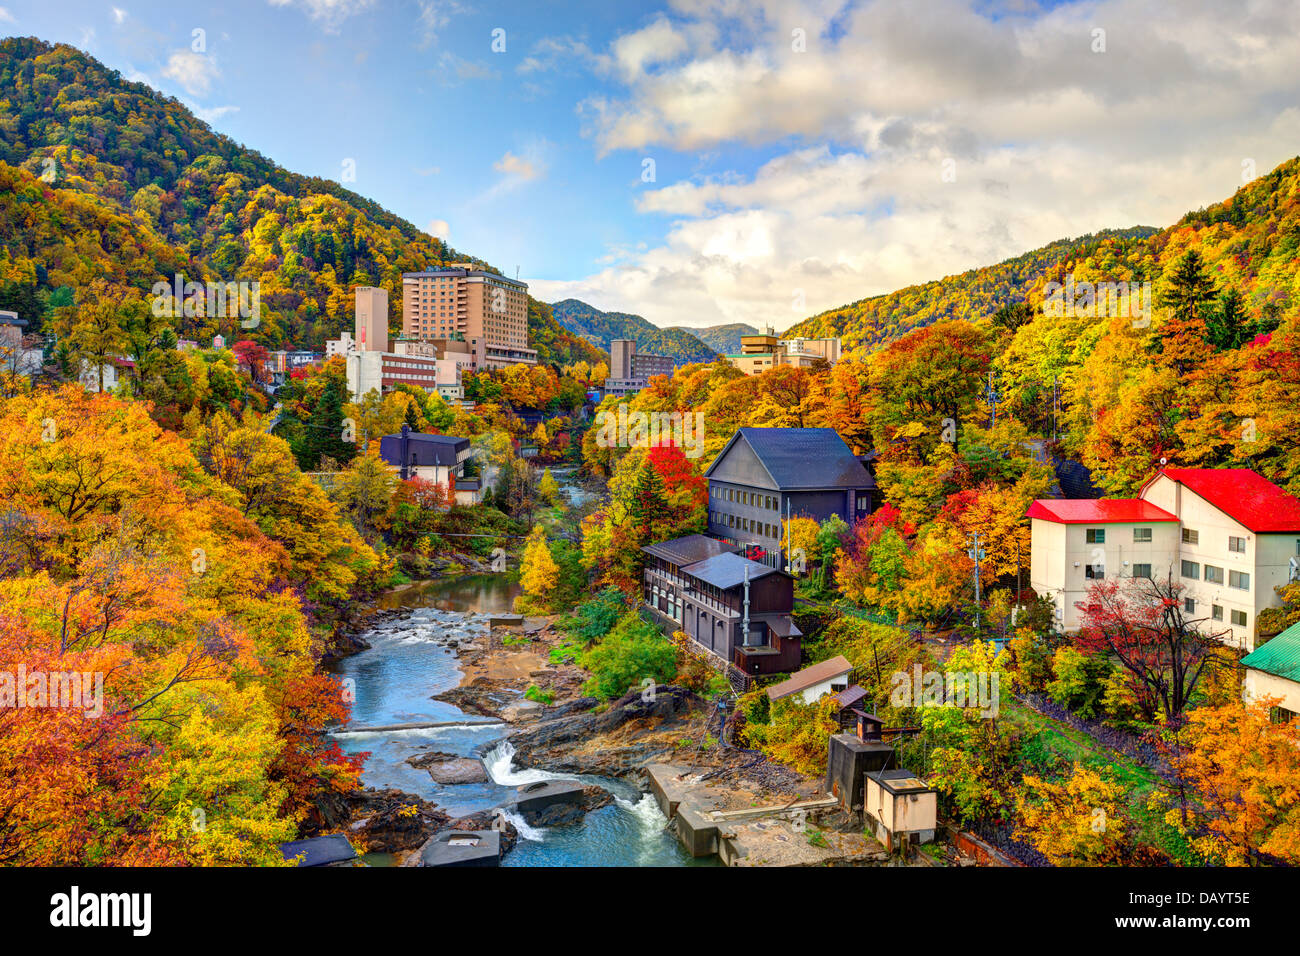 Hot springs resort town of Jozankei, Japan in the fall. - Stock Image